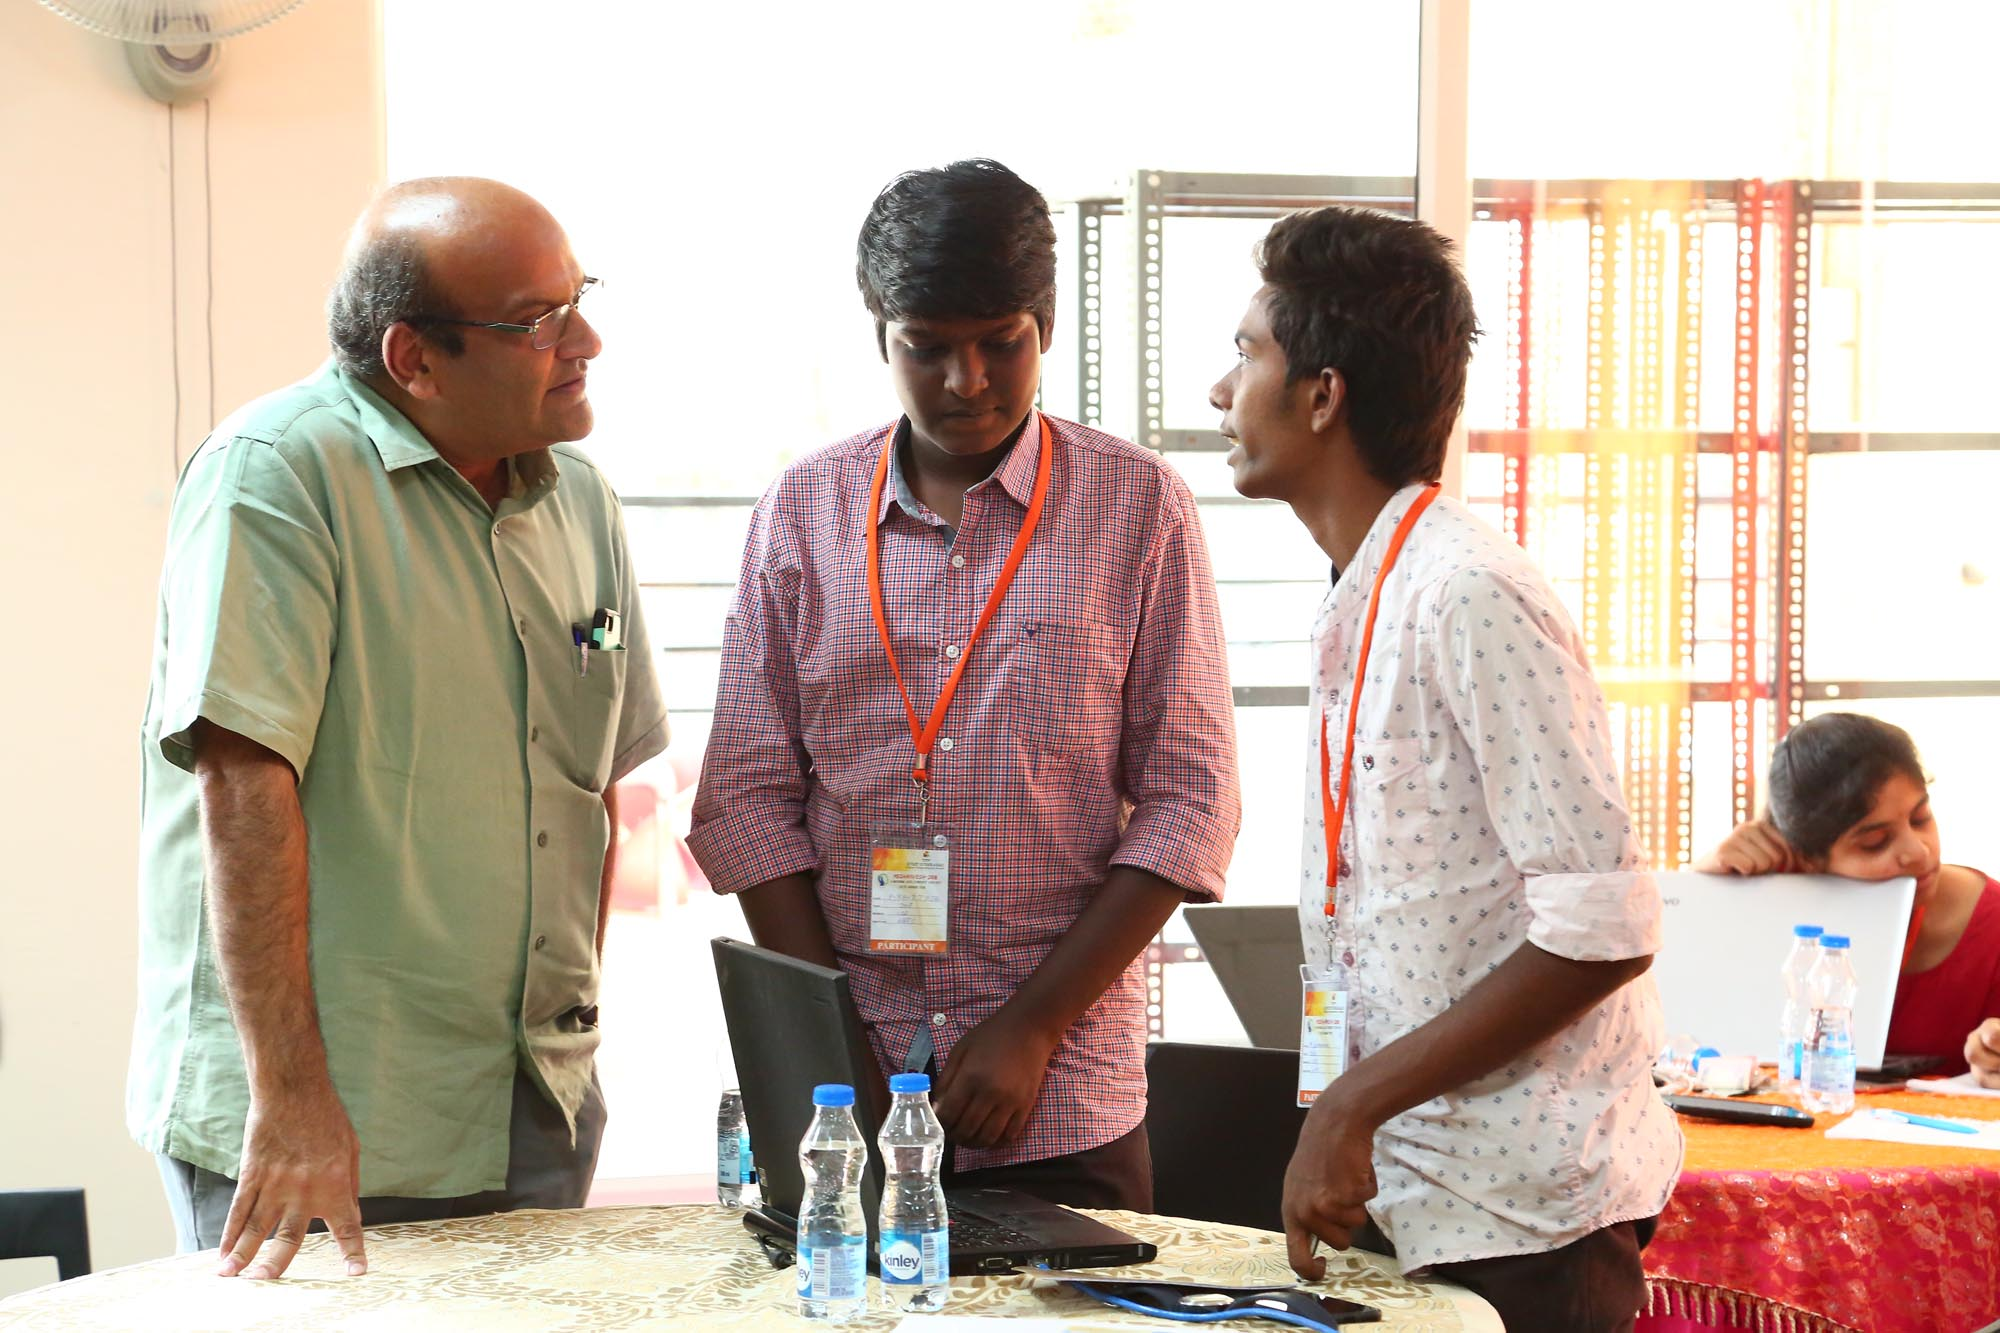 Chairman interacting with 1 Year participants from other college